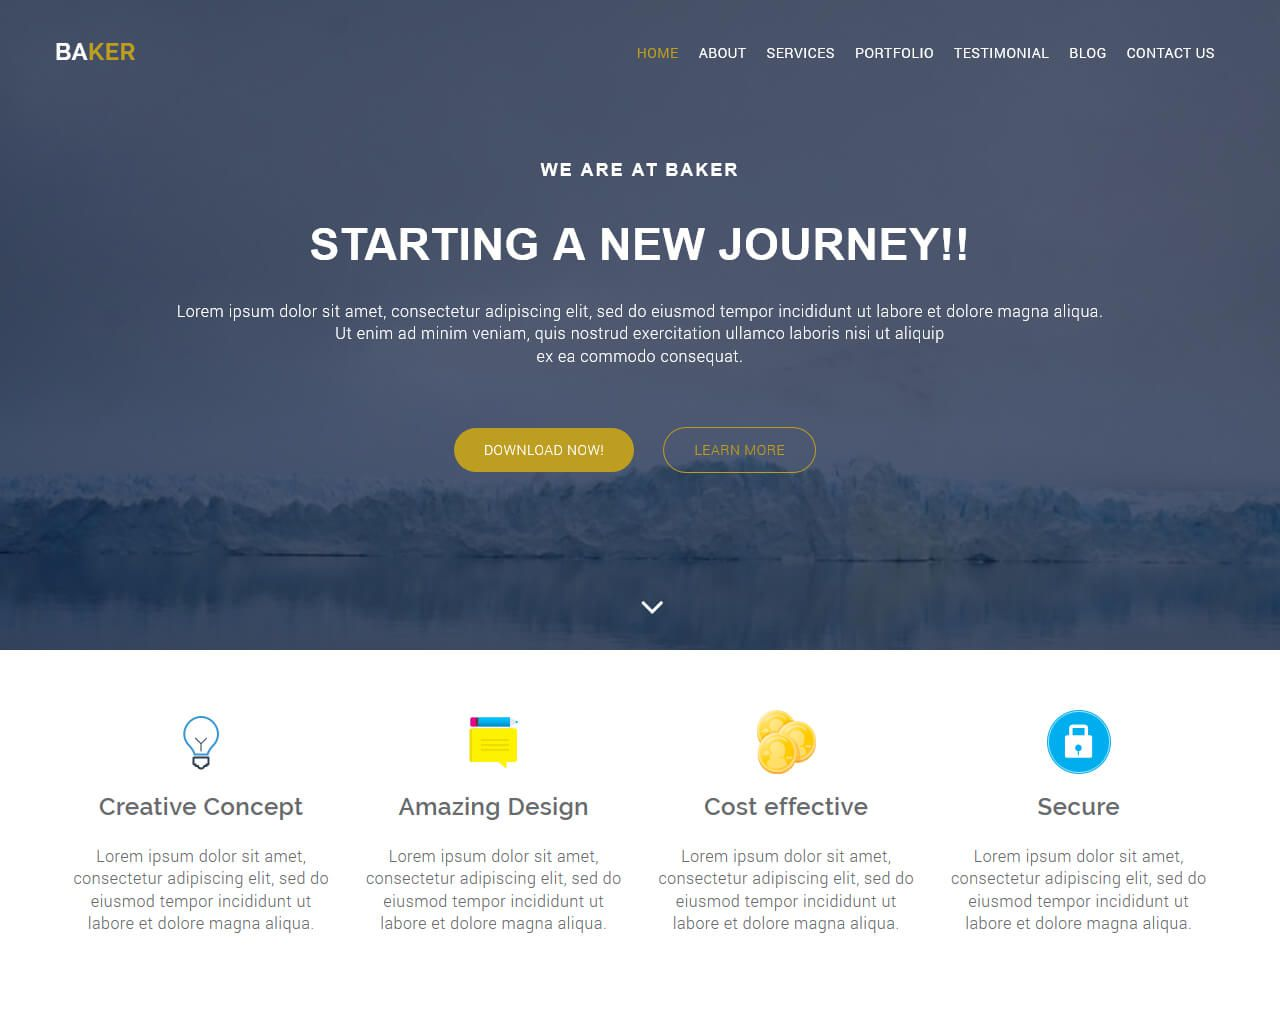 001 Fascinating Free Bootstrap Website Template High Resolution  Templates Responsive With Slider Download For Education BusinesFull